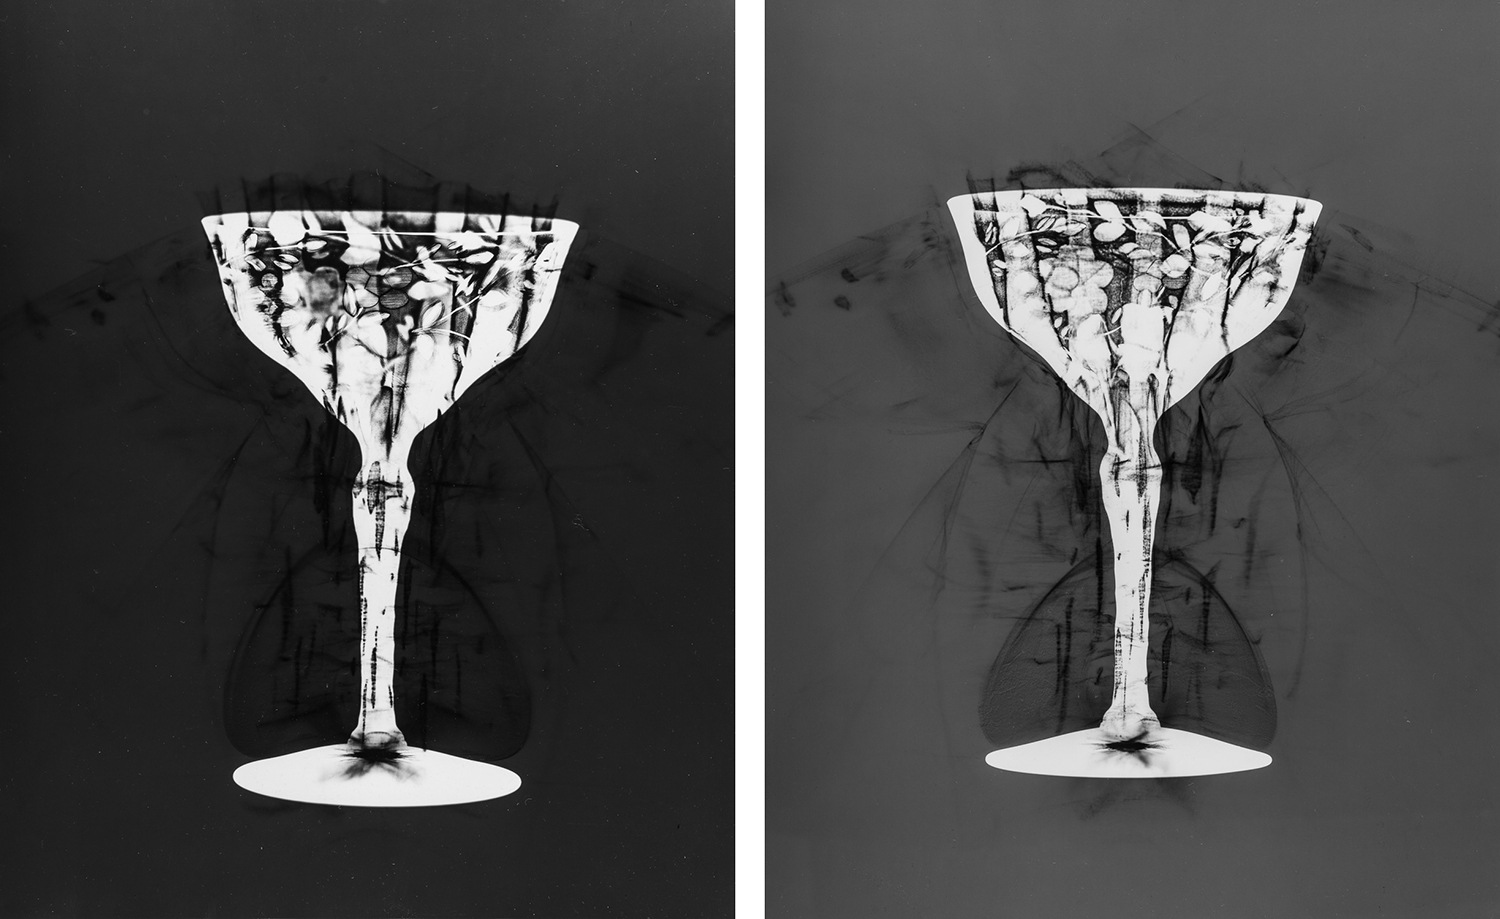 Photograms © Sarah Rose Weitzman